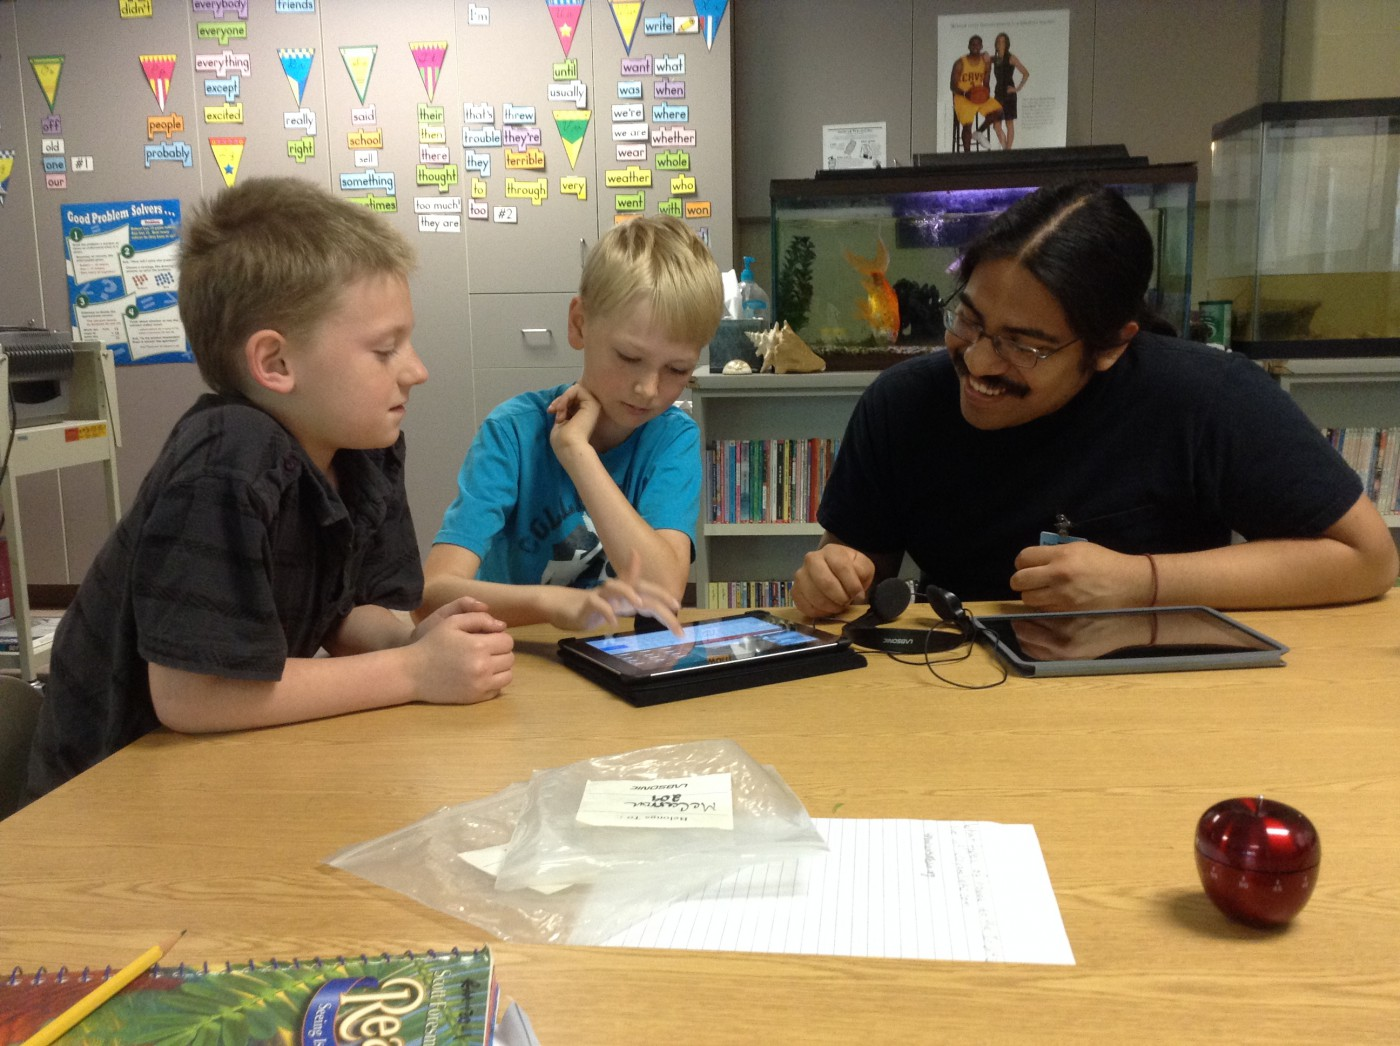 Ipads In Elementary Schools Using iPads to ...